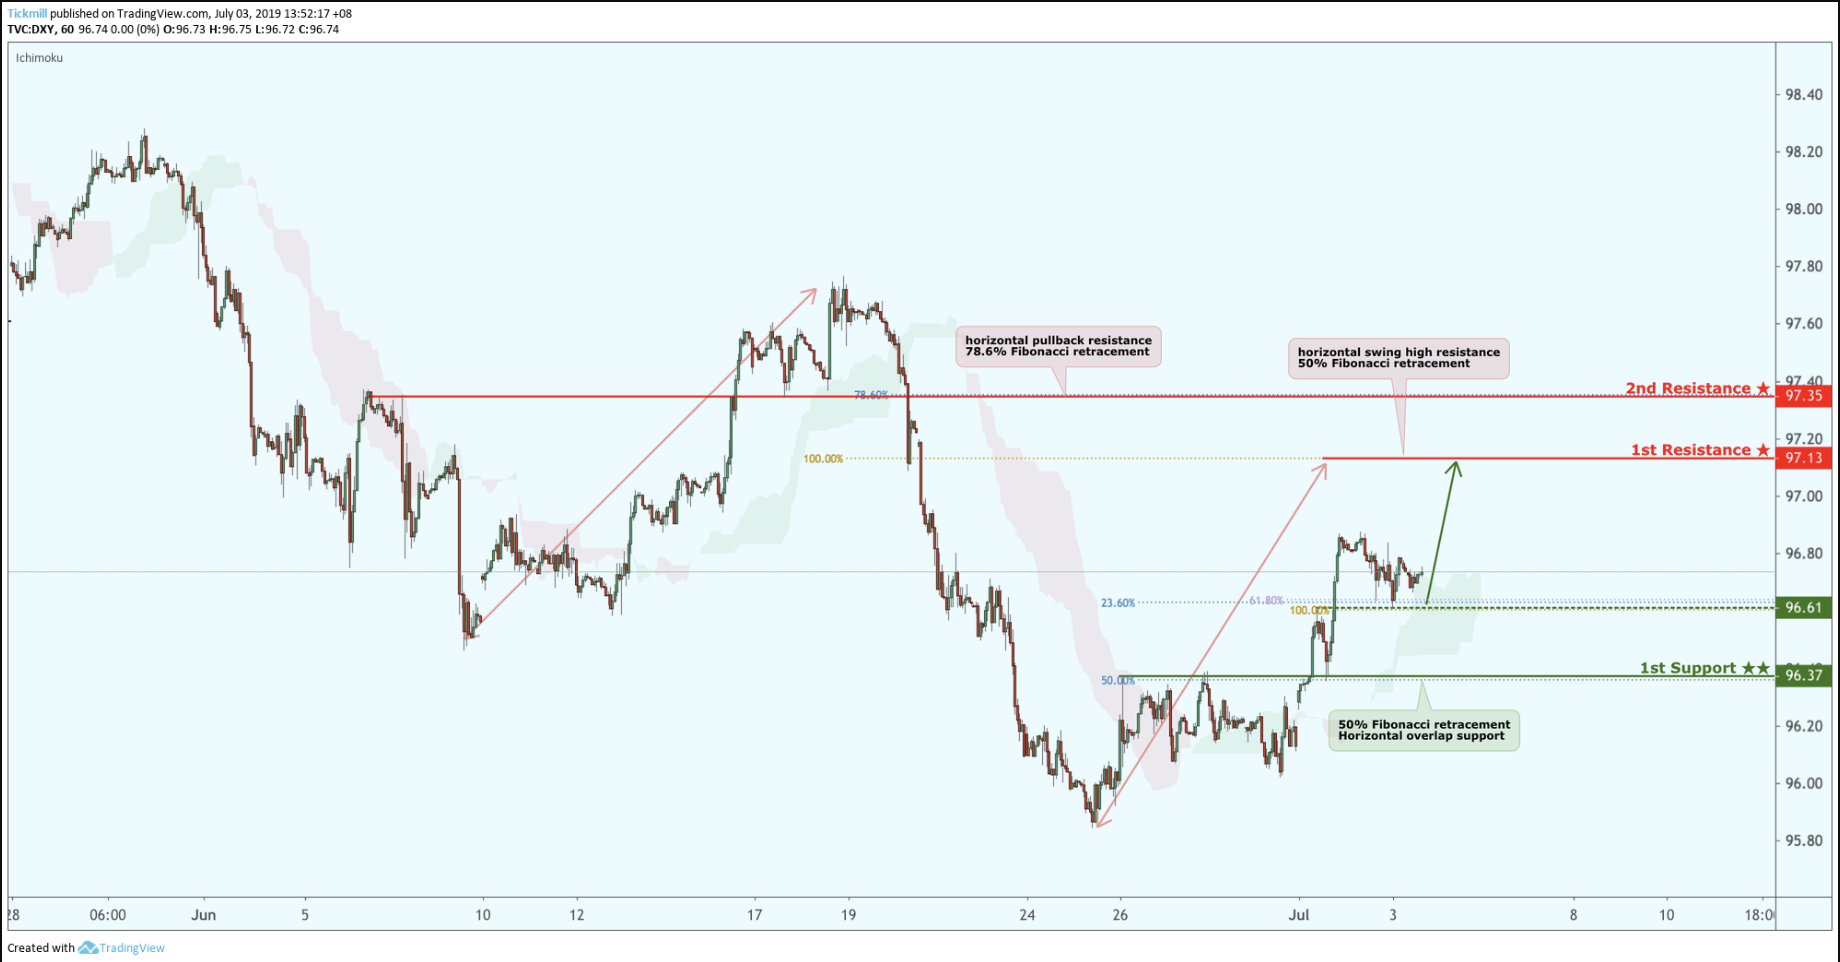 Dxy Bounced From Support, Potential for a Further Rise!